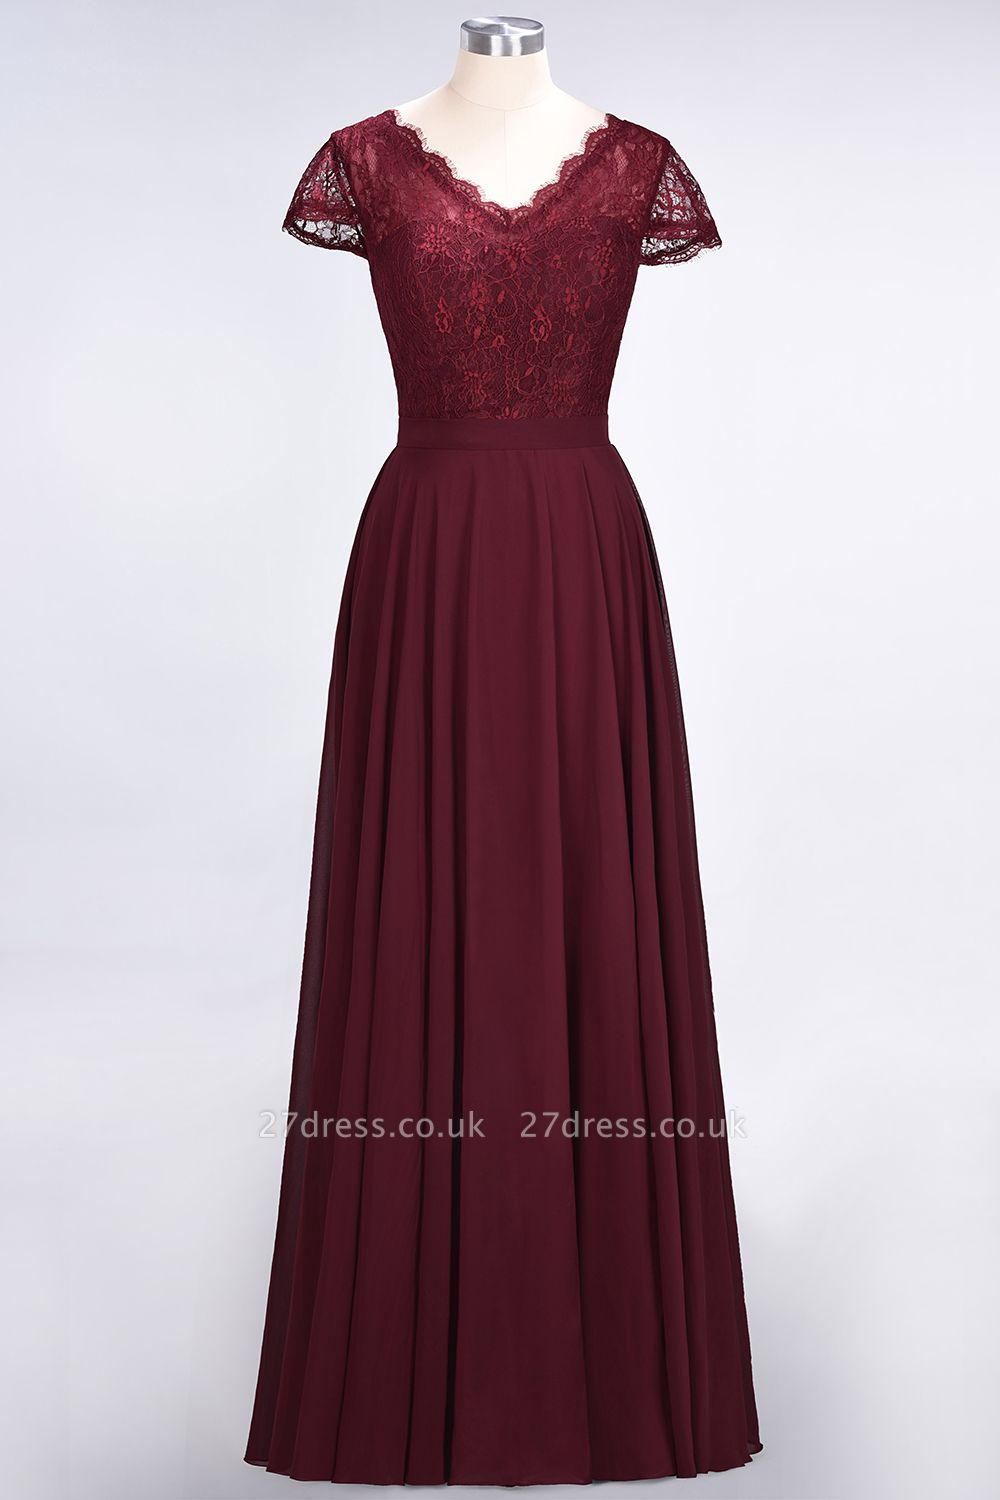 Sexy A-line Flowy Lace Alluring V-neck Cap-Sleeves Floor-Length Bridesmaid Dress UK UK